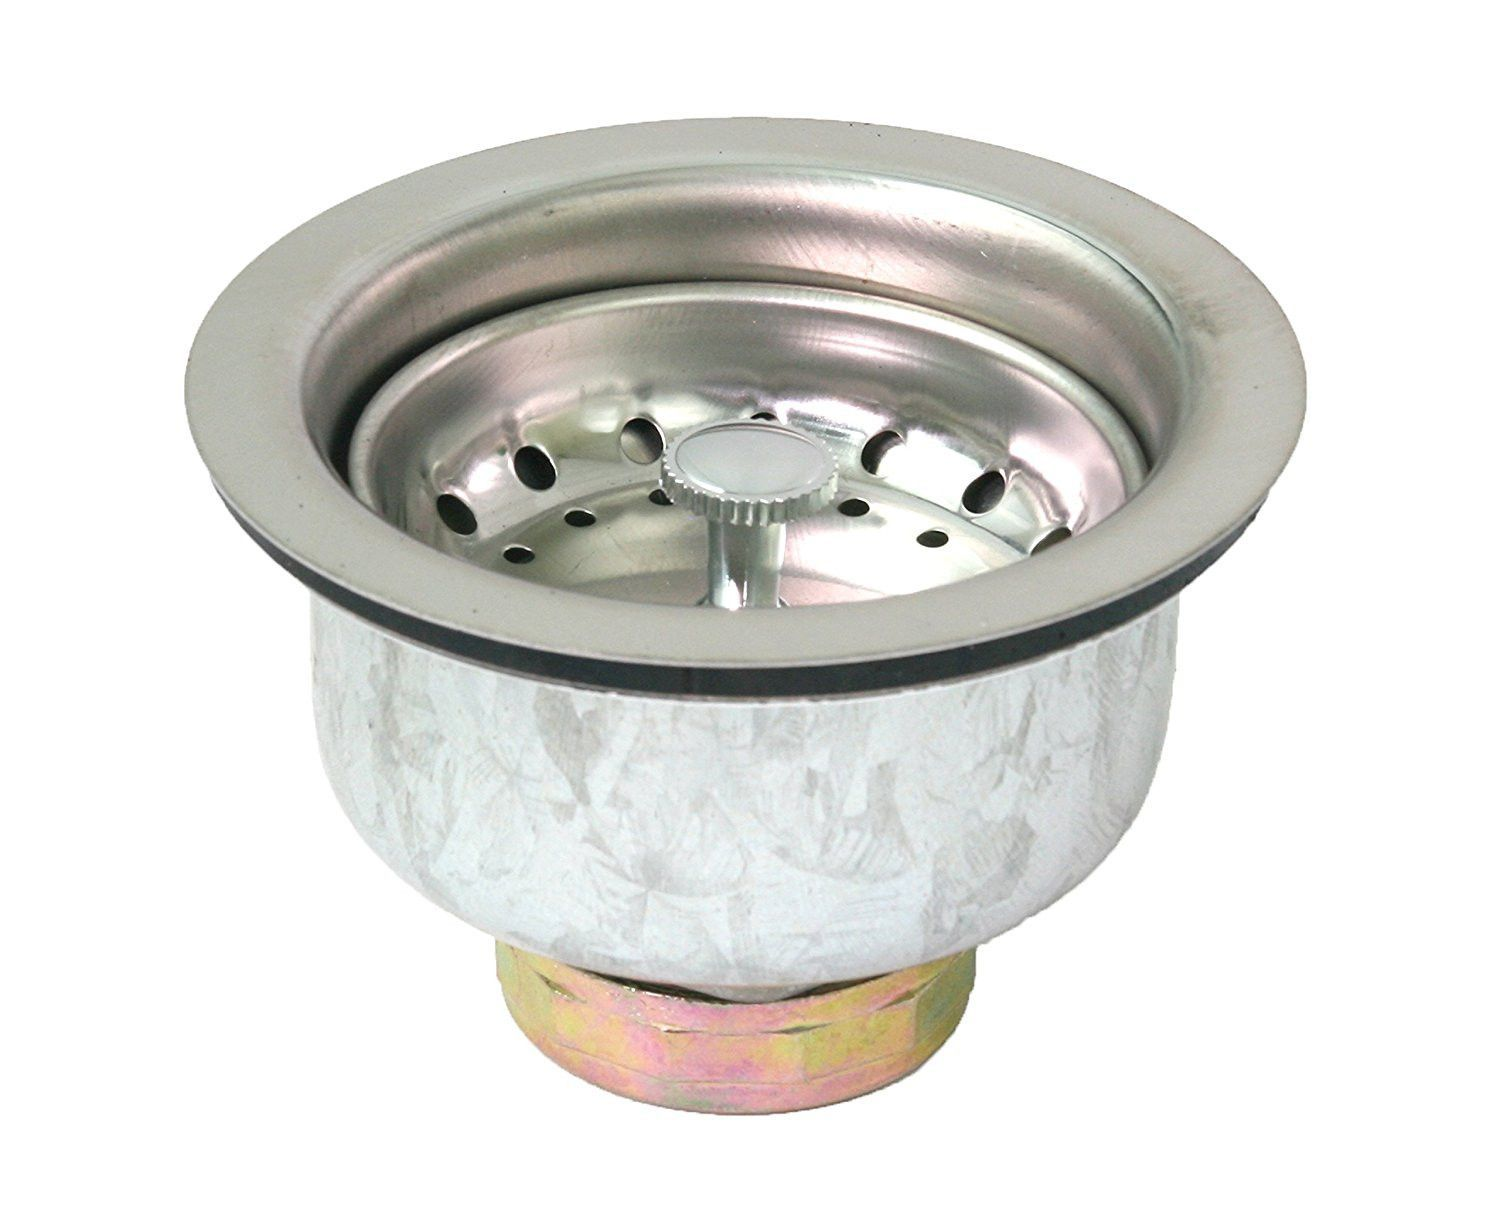 Deep 2 34 Stainless Steel Sink Strainer with